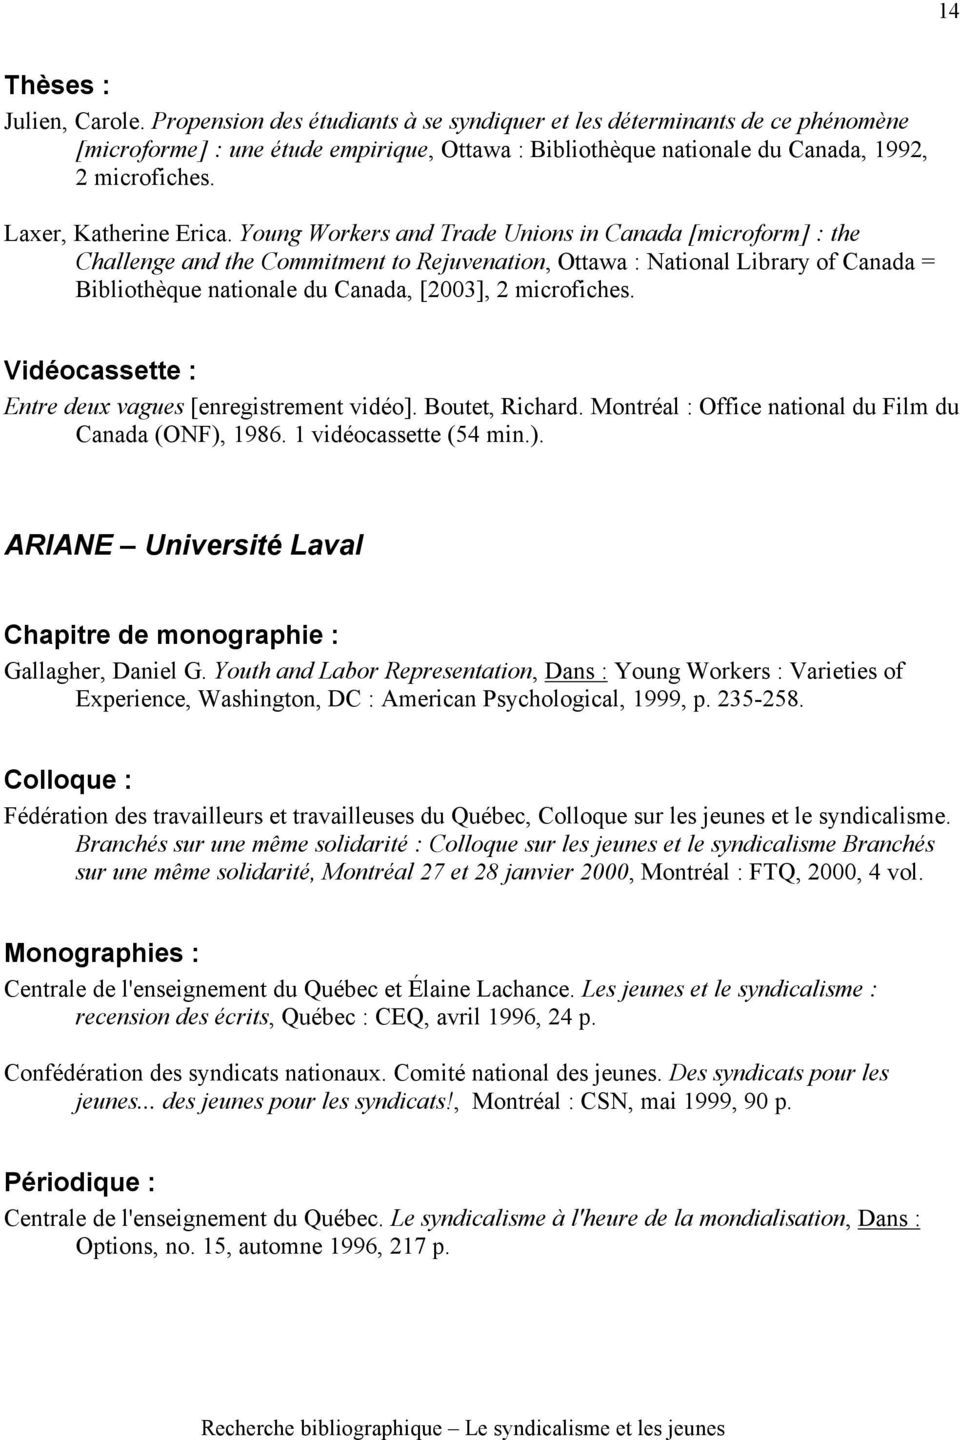 Young Workers and Trade Unions in Canada [microform] : the Challenge and the Commitment to Rejuvenation, Ottawa : National Library of Canada = Bibliothèque nationale du Canada, [2003], 2 microfiches.